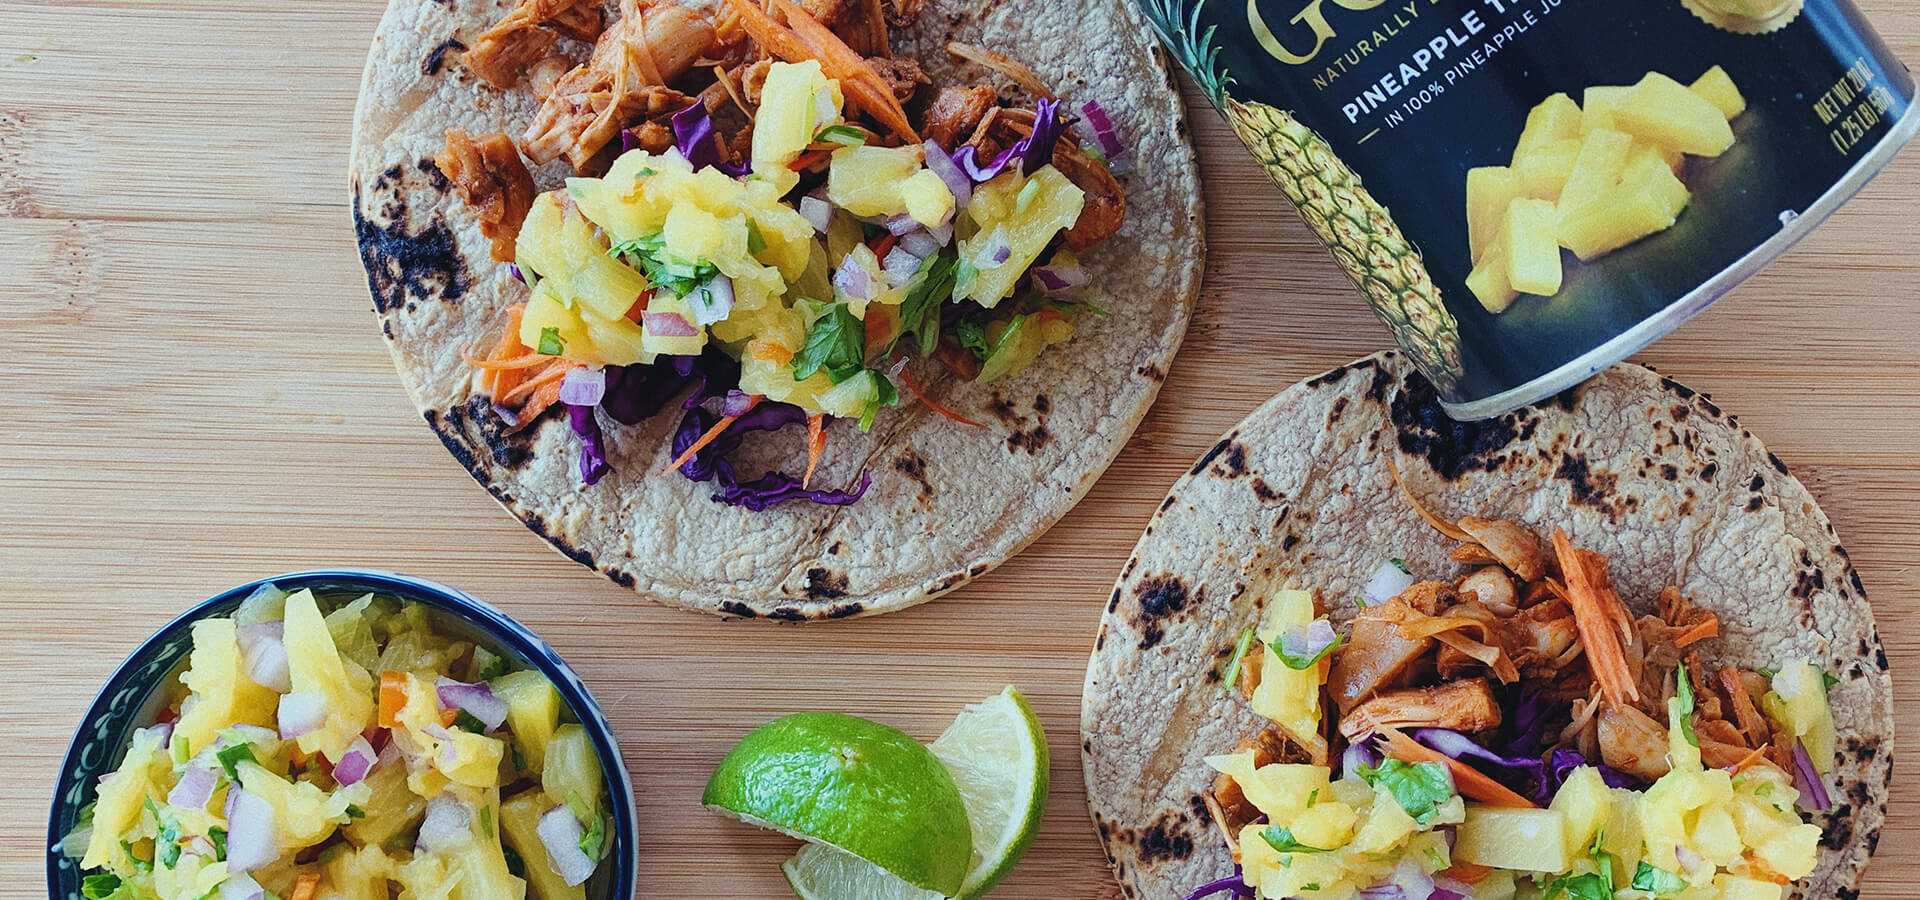 Spicy Chipotle Jackfruit Tacos & Pineapple Salsa